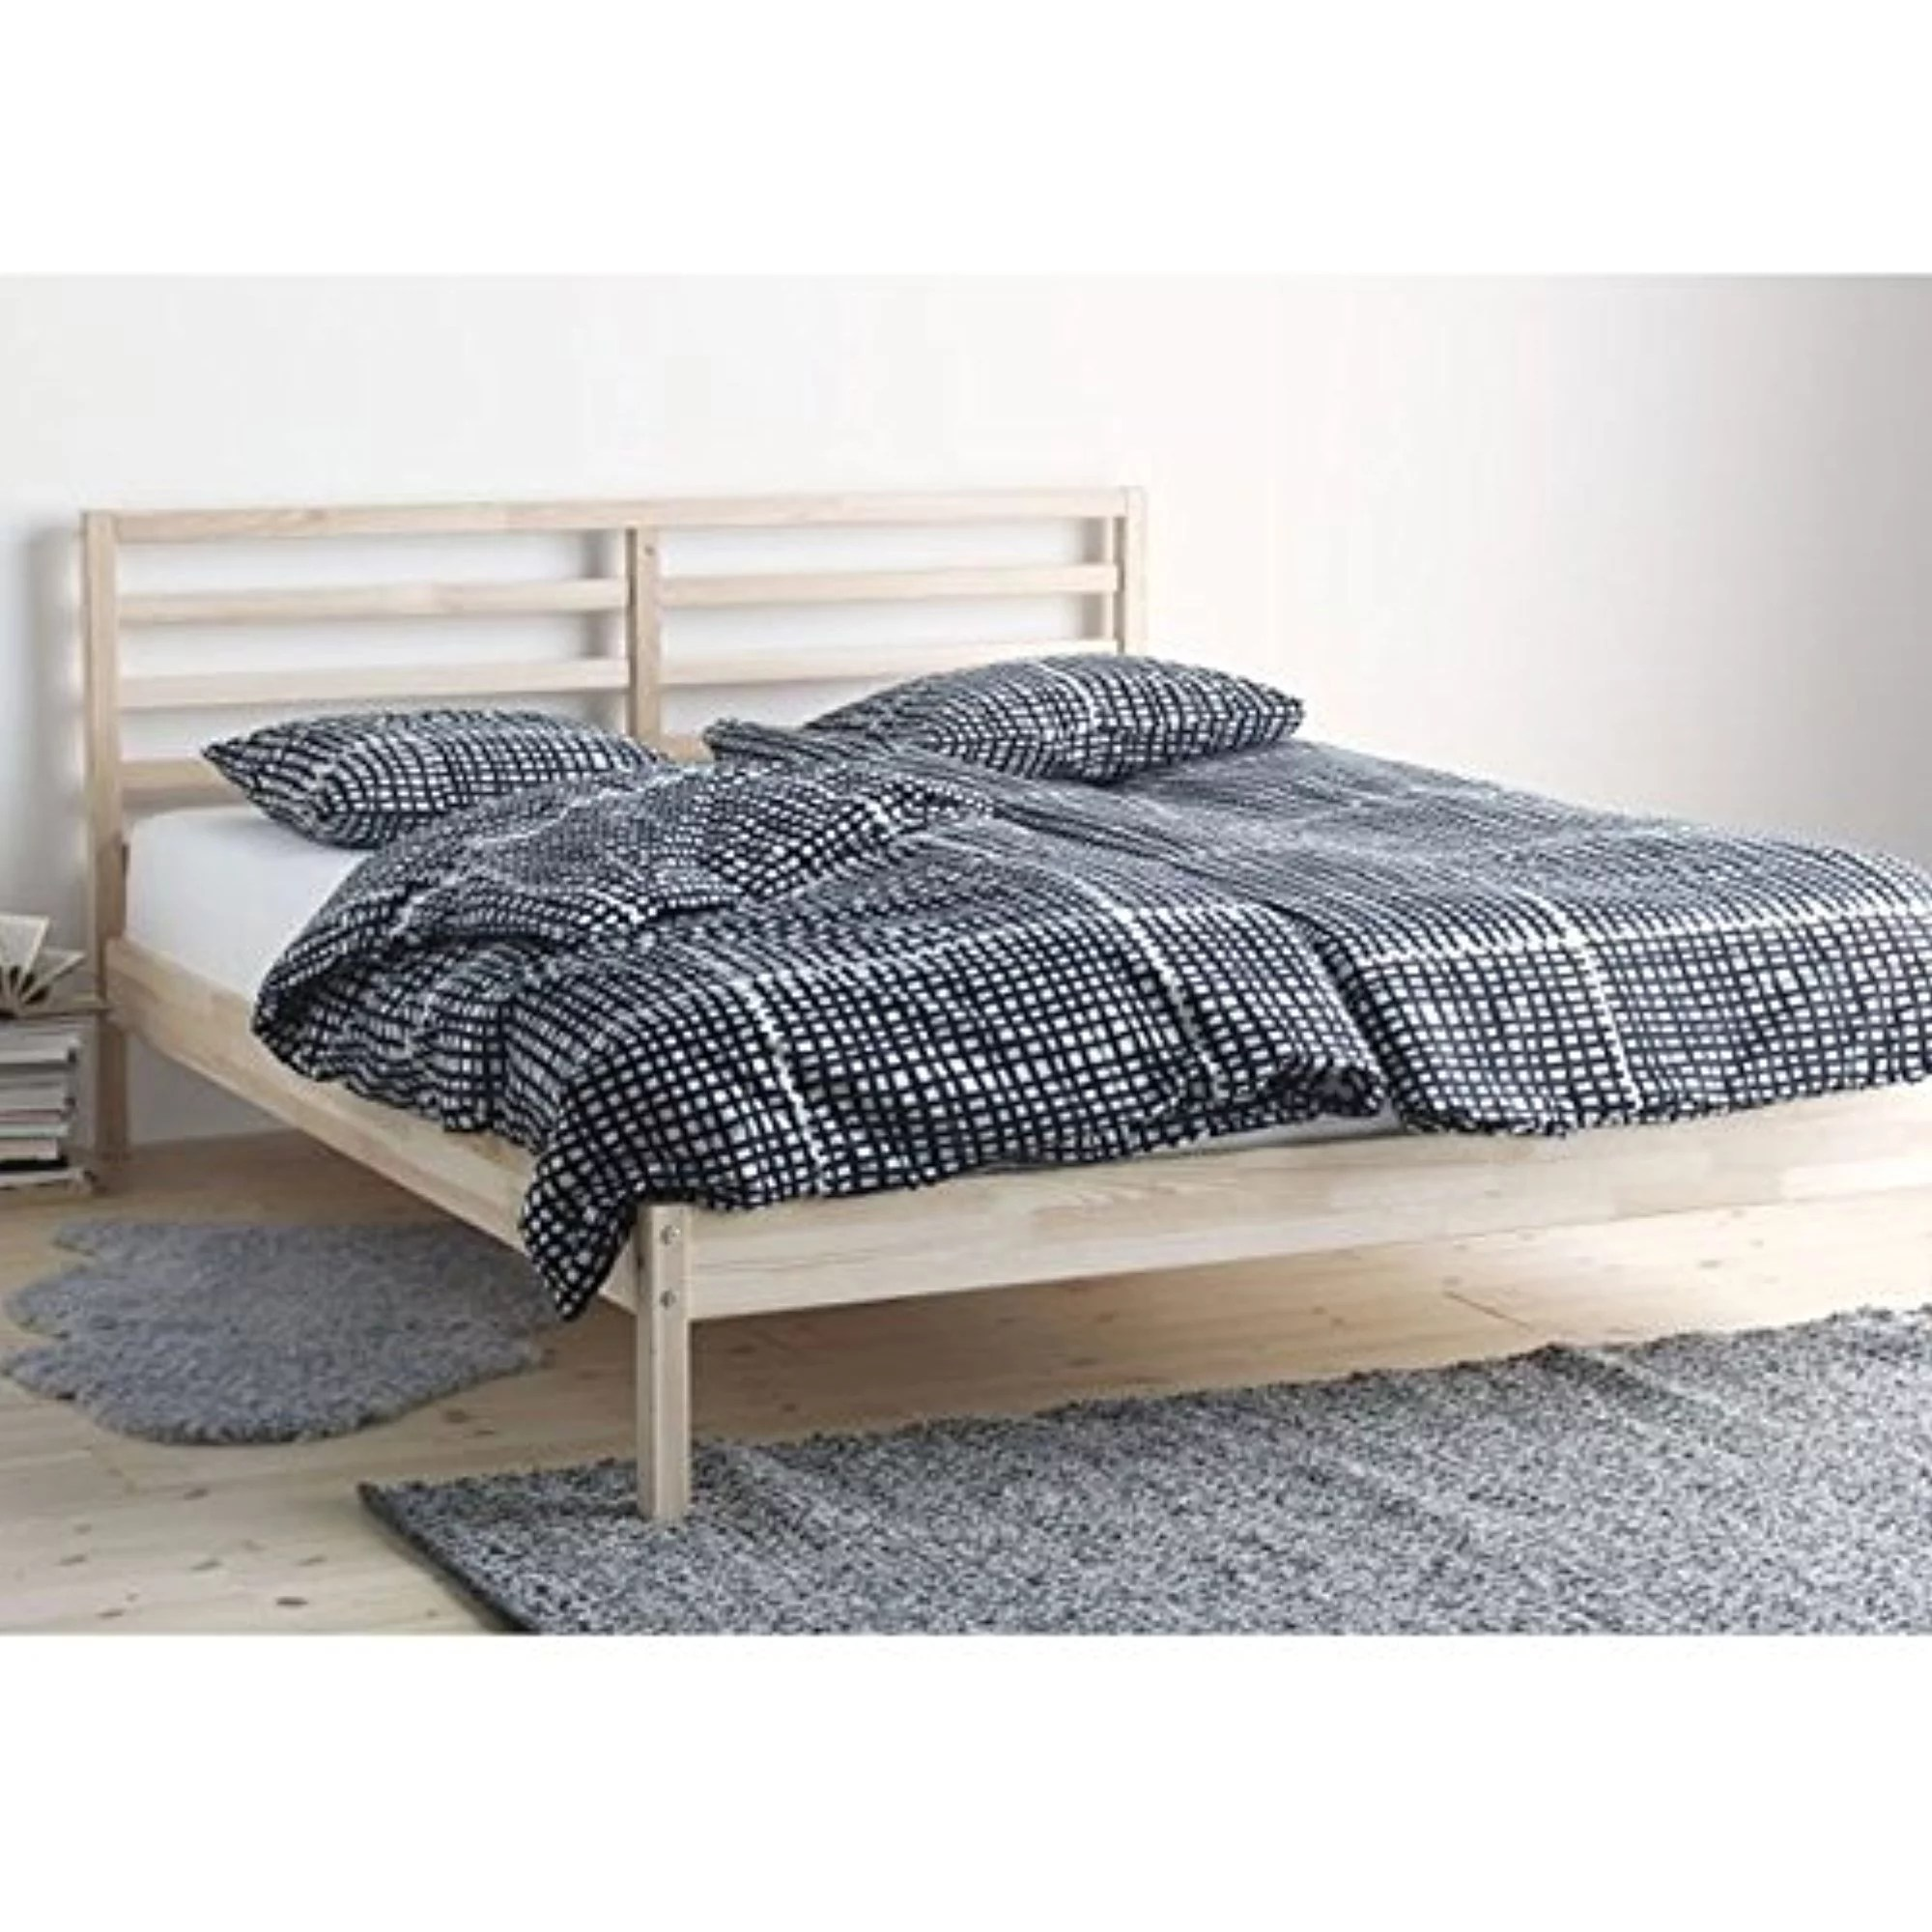 Ikea Full Size Bed Frame Ikea Tarva Full Size Bed Frame Solid Pine Wood Brown 183838 1125 22